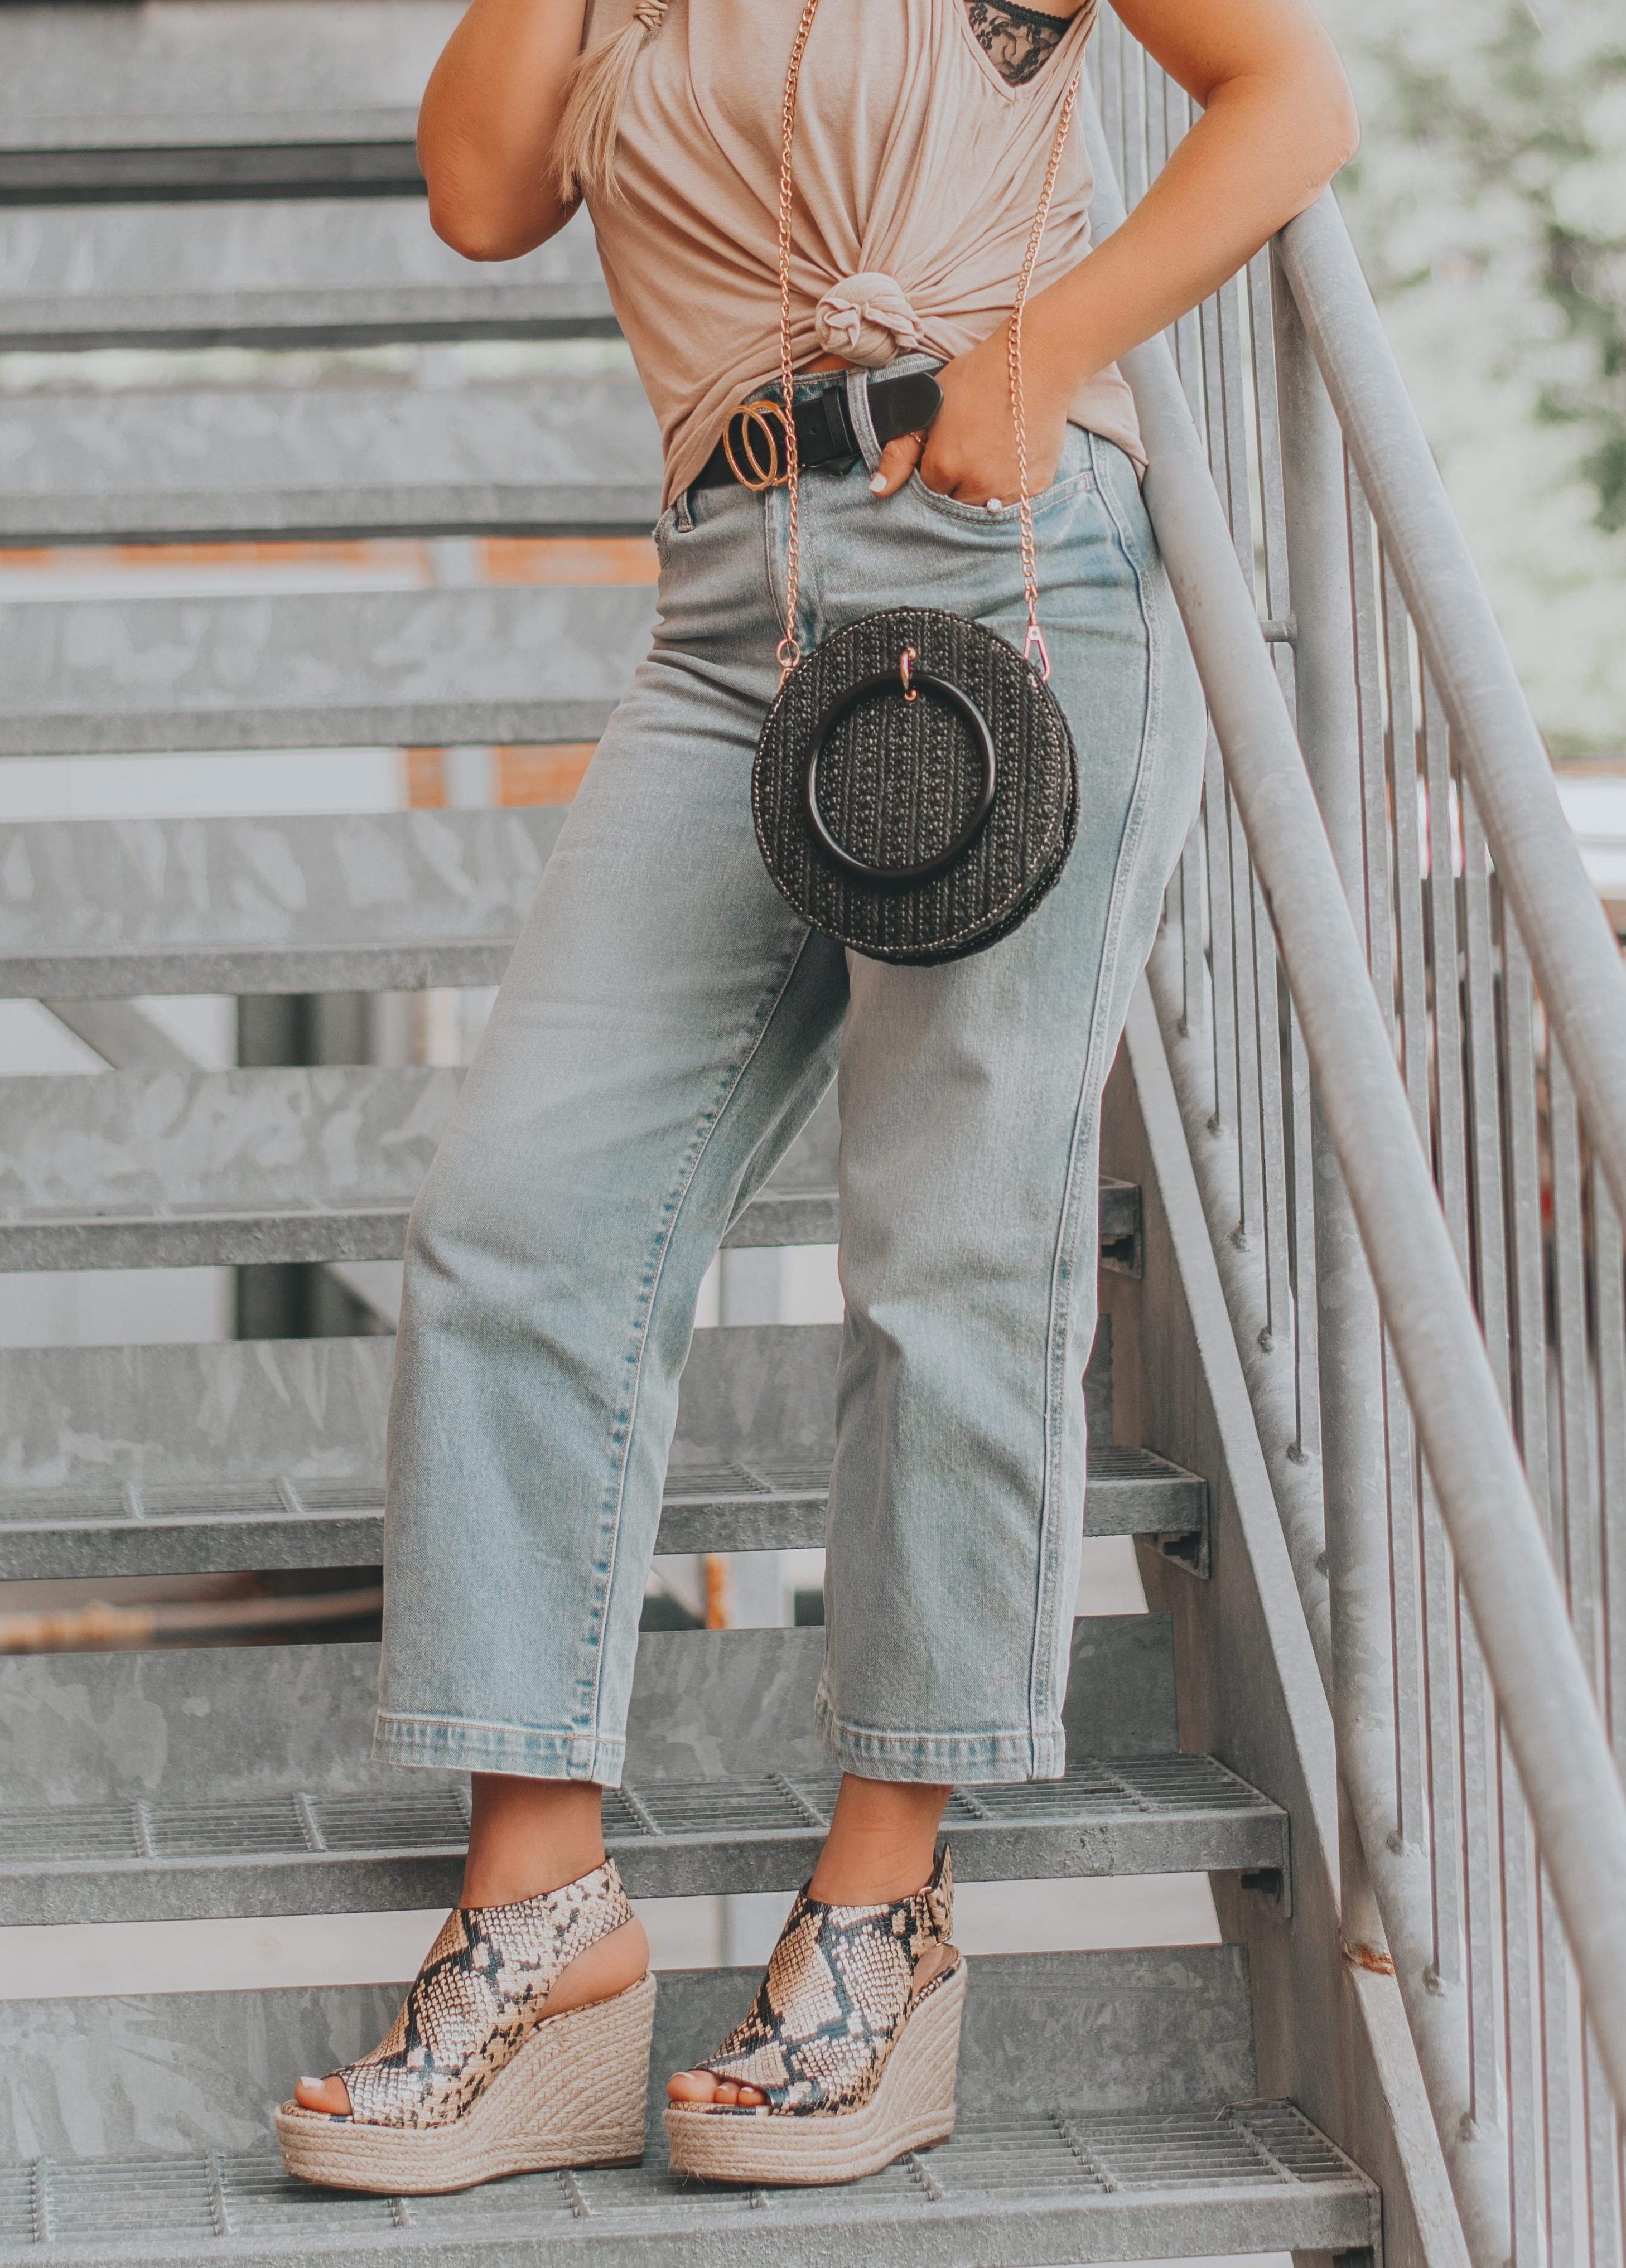 Aerosoles Hillsides: The Only Wedges You Need this Summer | BreeAtLast.com